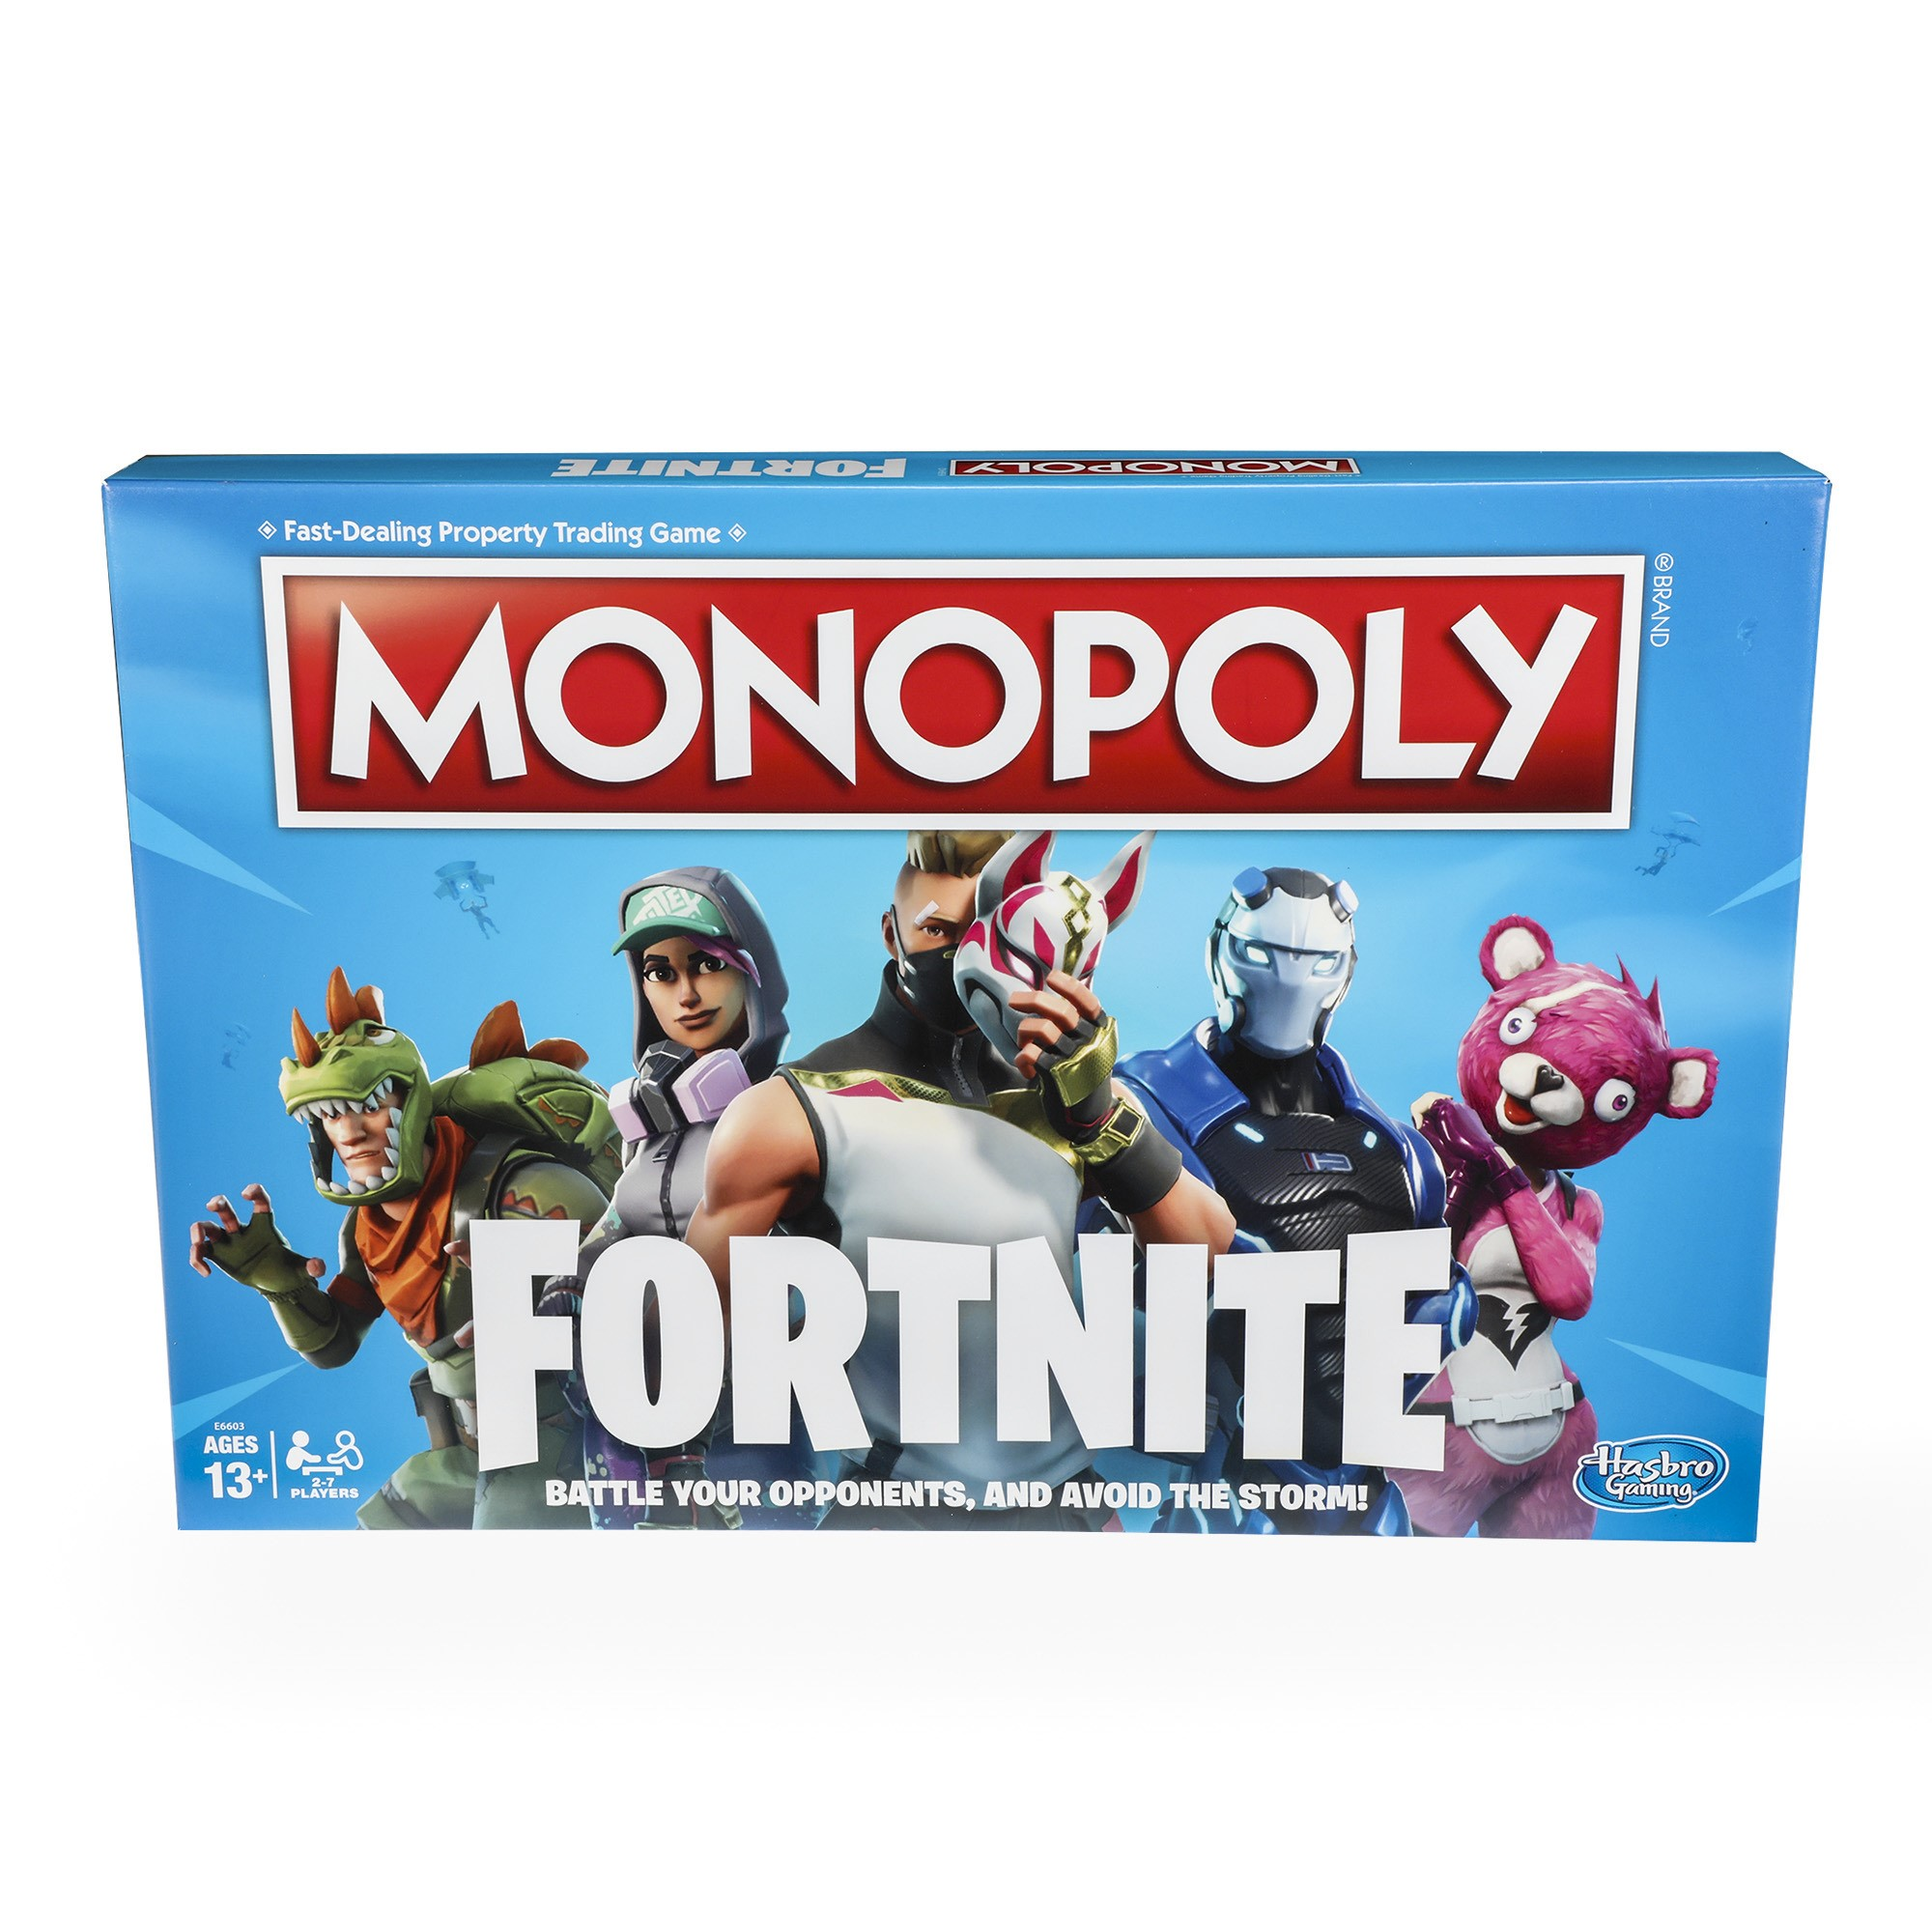 Monopoly Fortnite Board Game for Ages 13 and up by Hasbro Inc